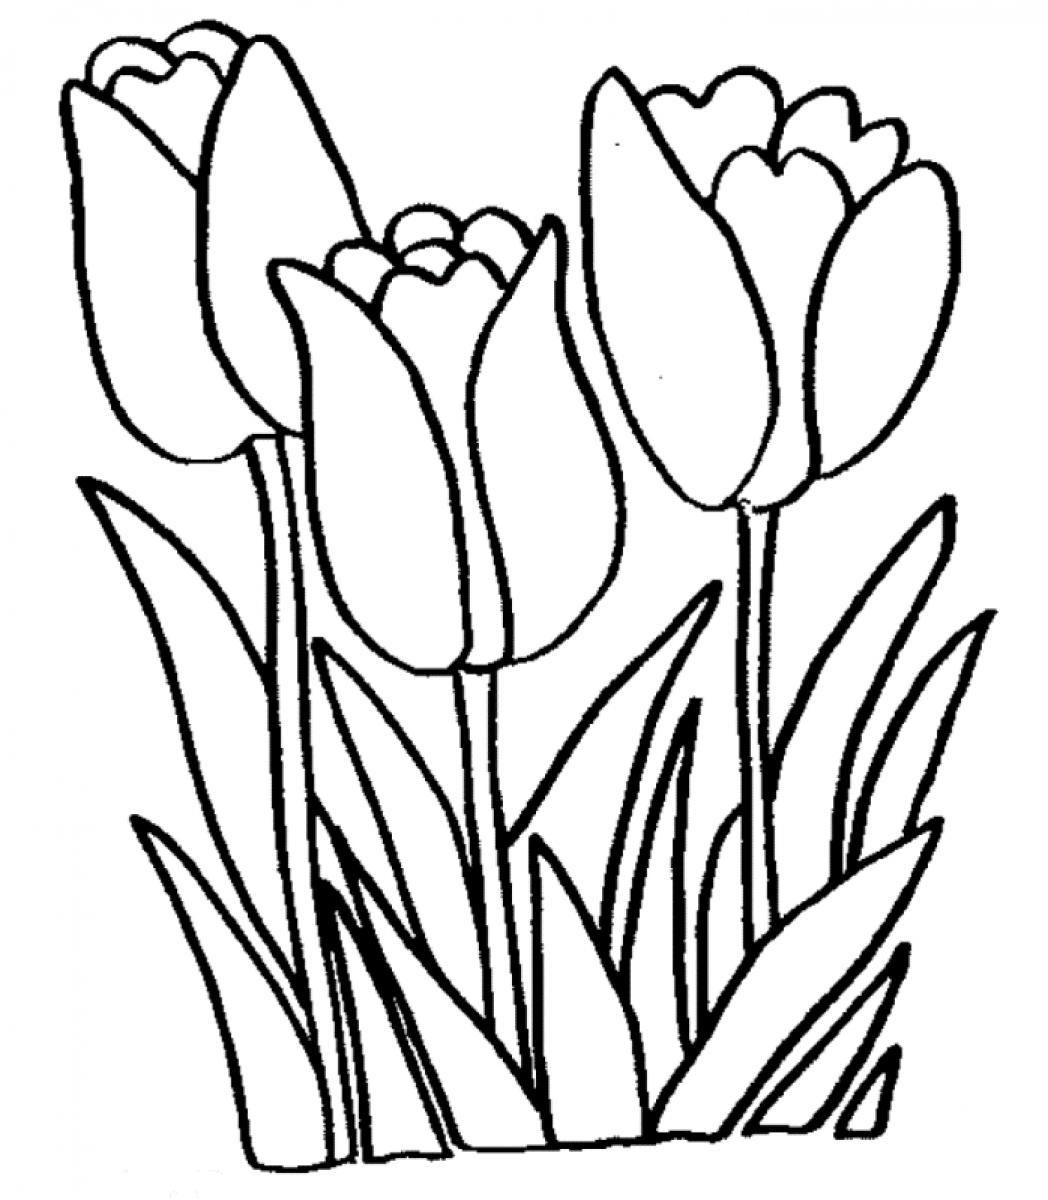 Tulip_Coloring_Page_01